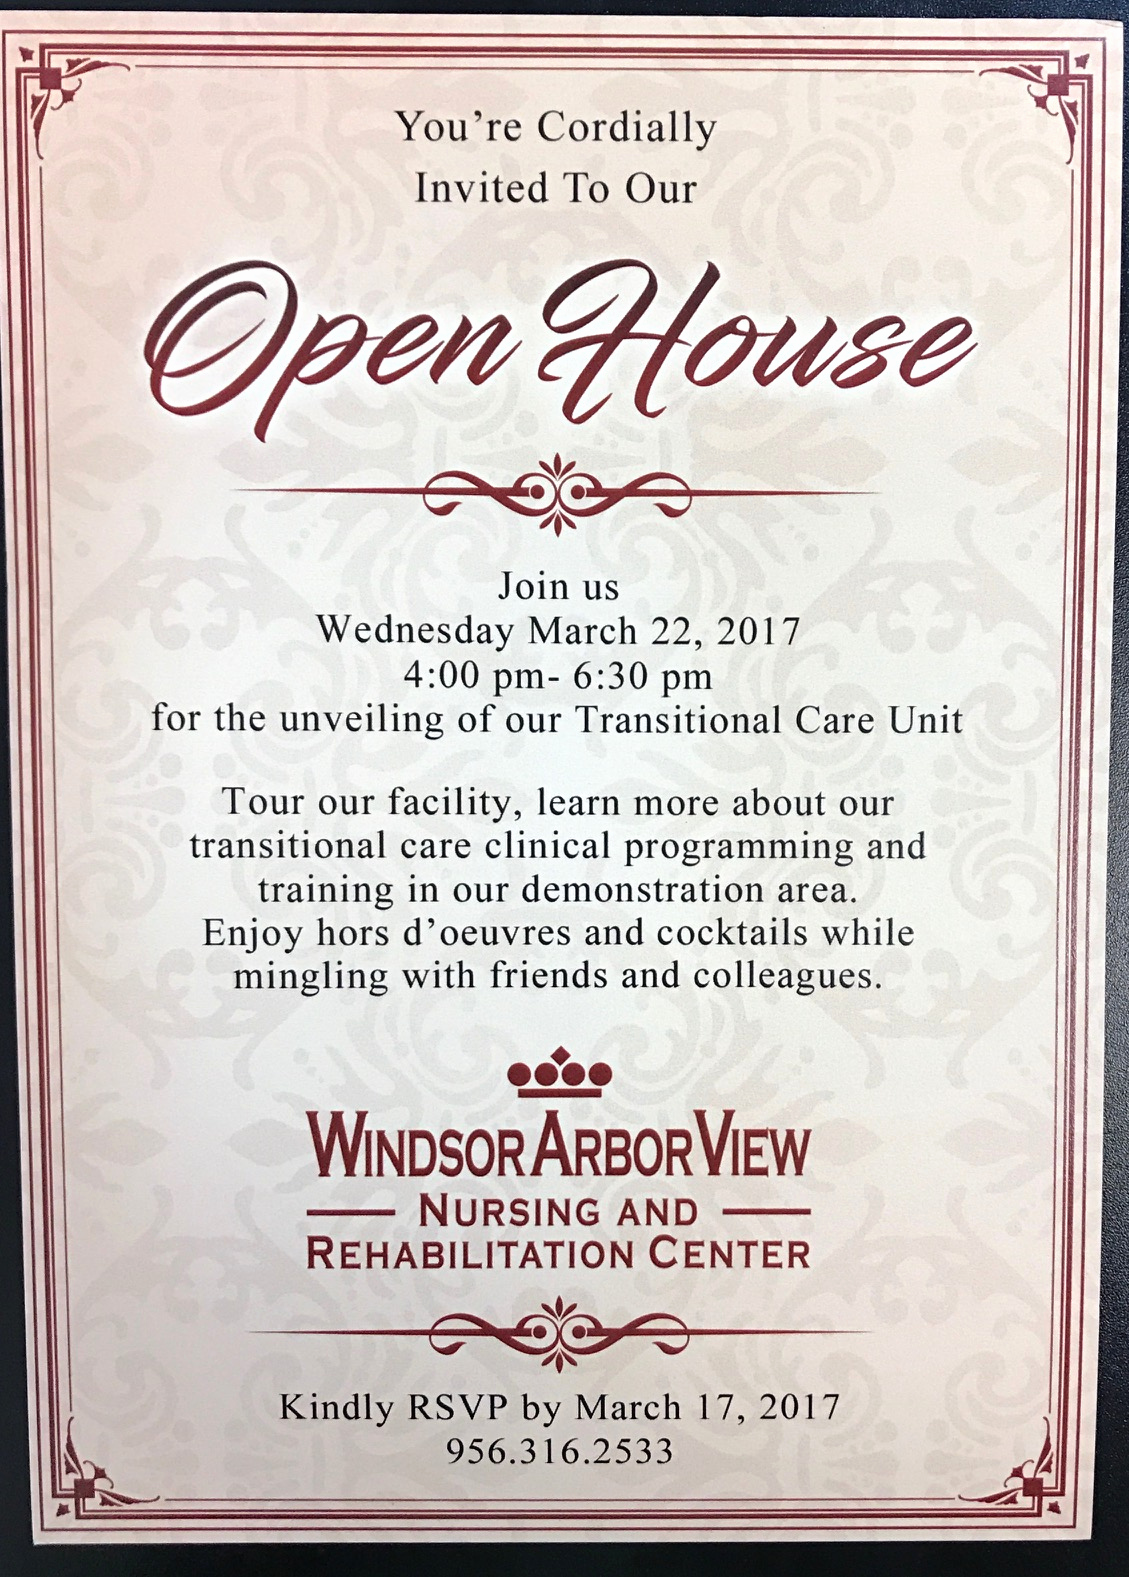 Sample Open House Invitation Elegant Windsor Arborview Open House Mcallen Chamber Of Merce